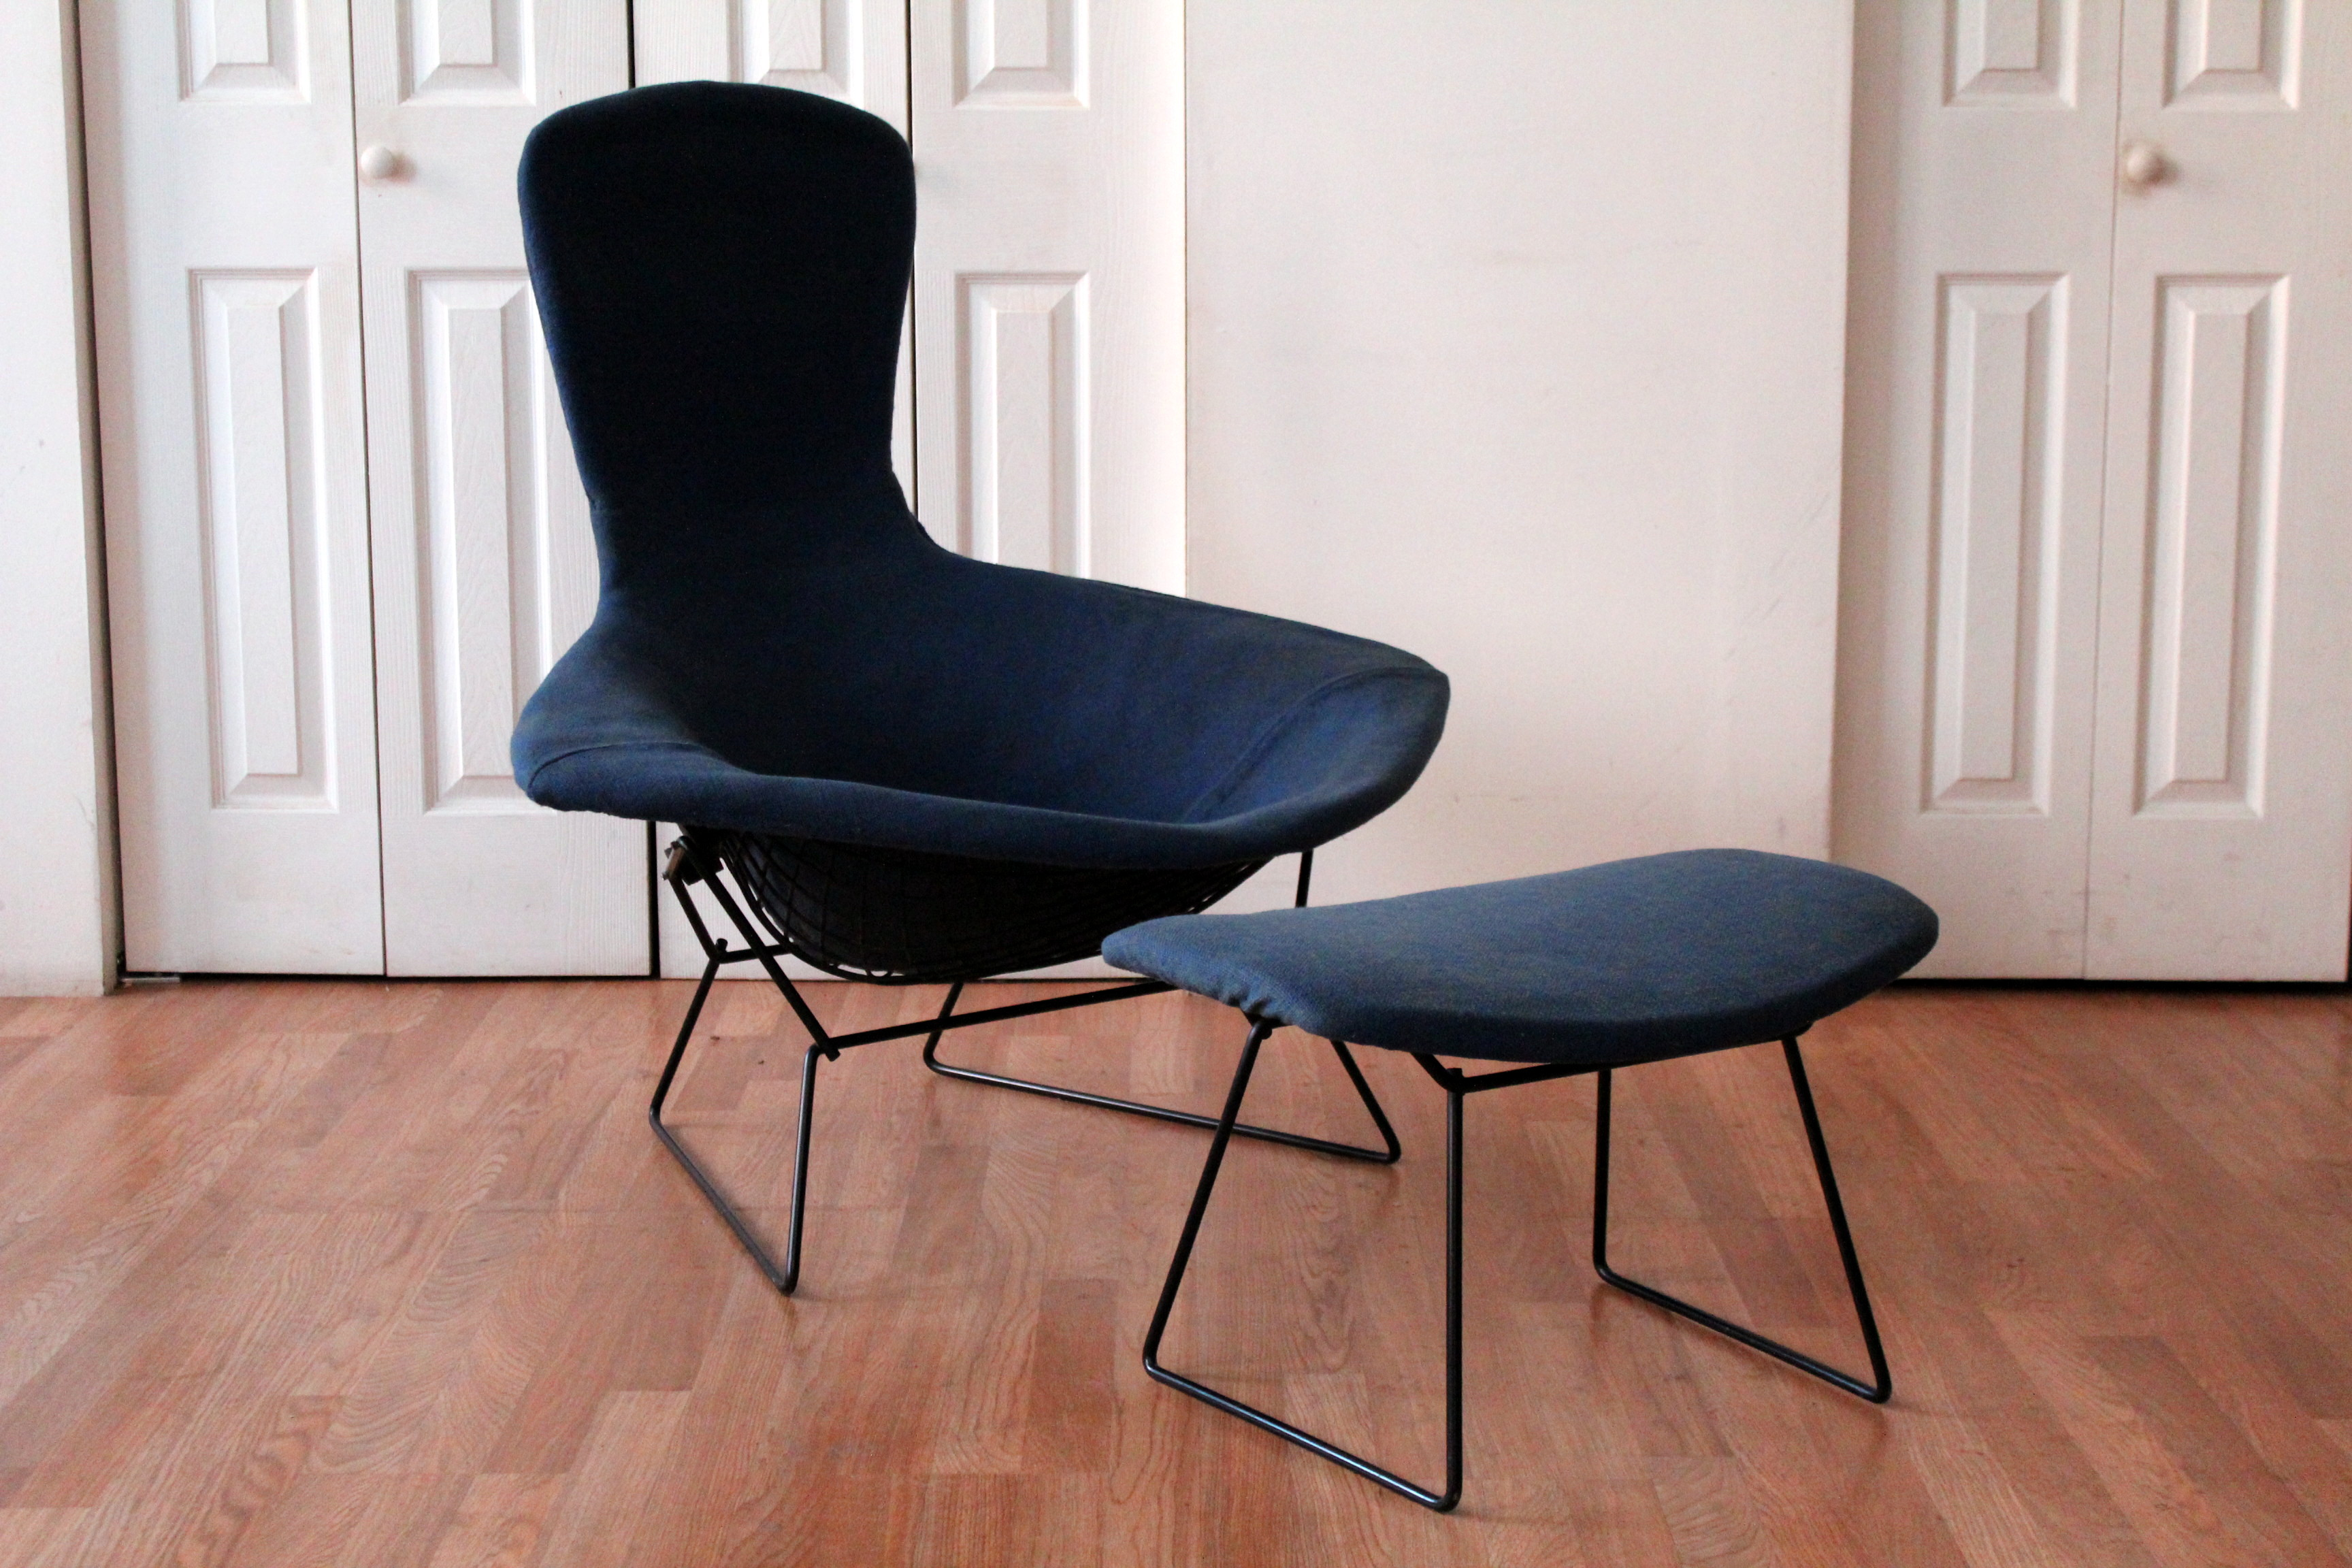 Authentic Vintage Harry Bertoia Knoll Bird Chairs ... & Authentic Vintage Harry Bertoia Knoll Bird Chairs and Ottoman | An ...